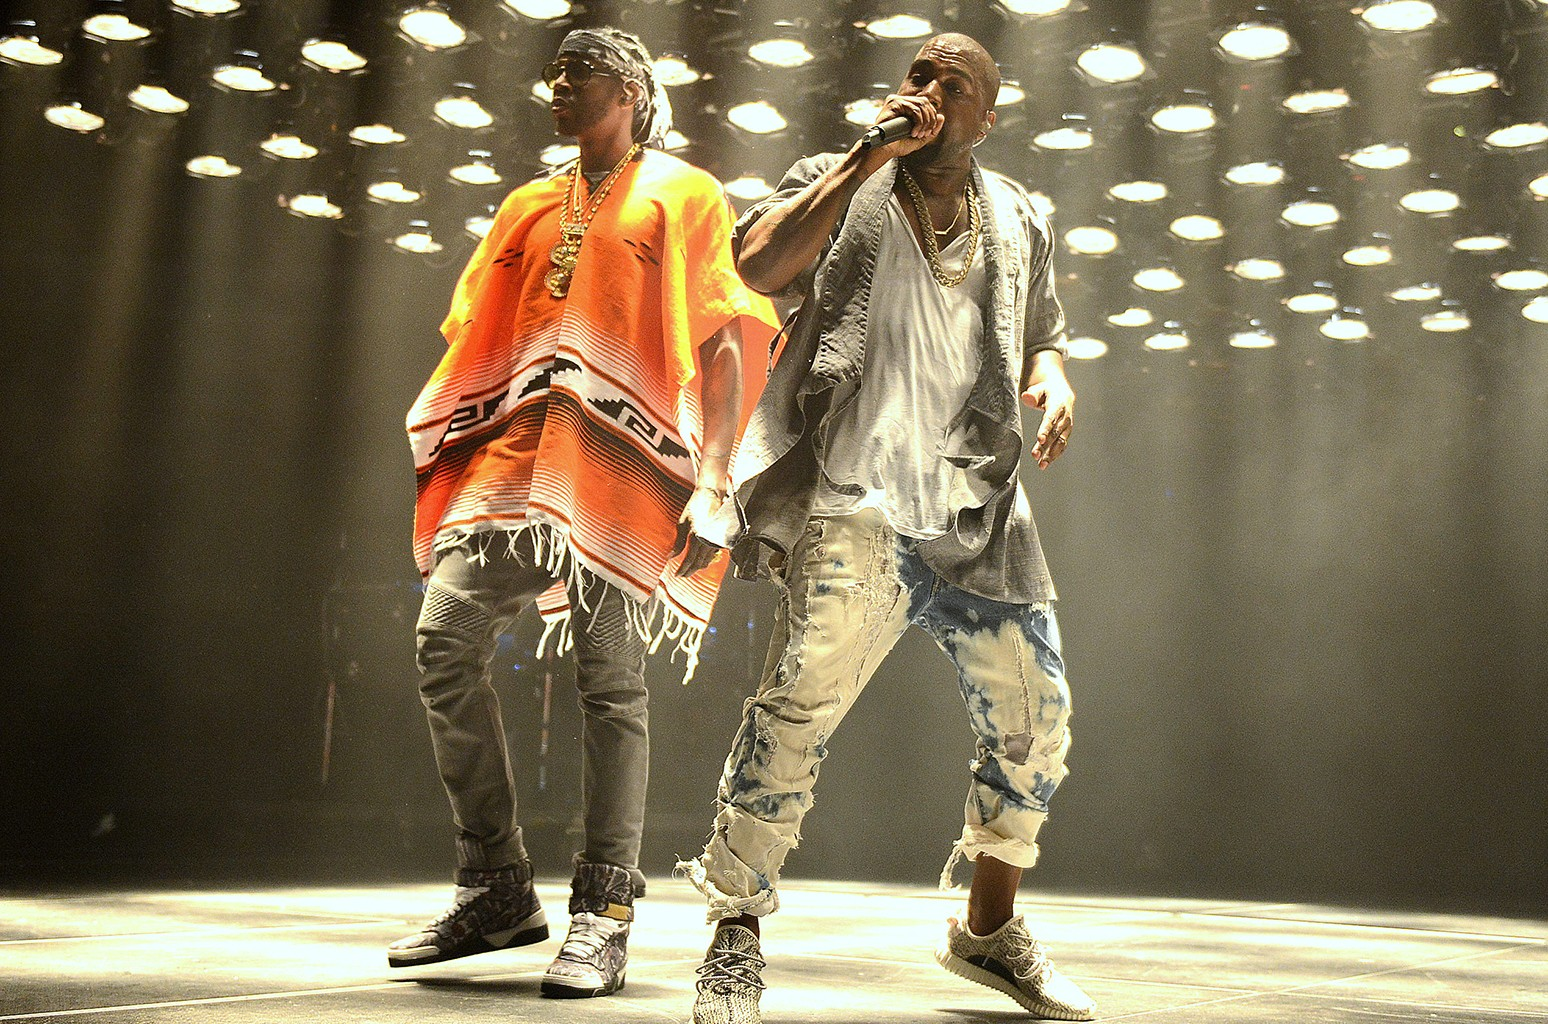 2 Chainz and Kanye West perform in Atlanta